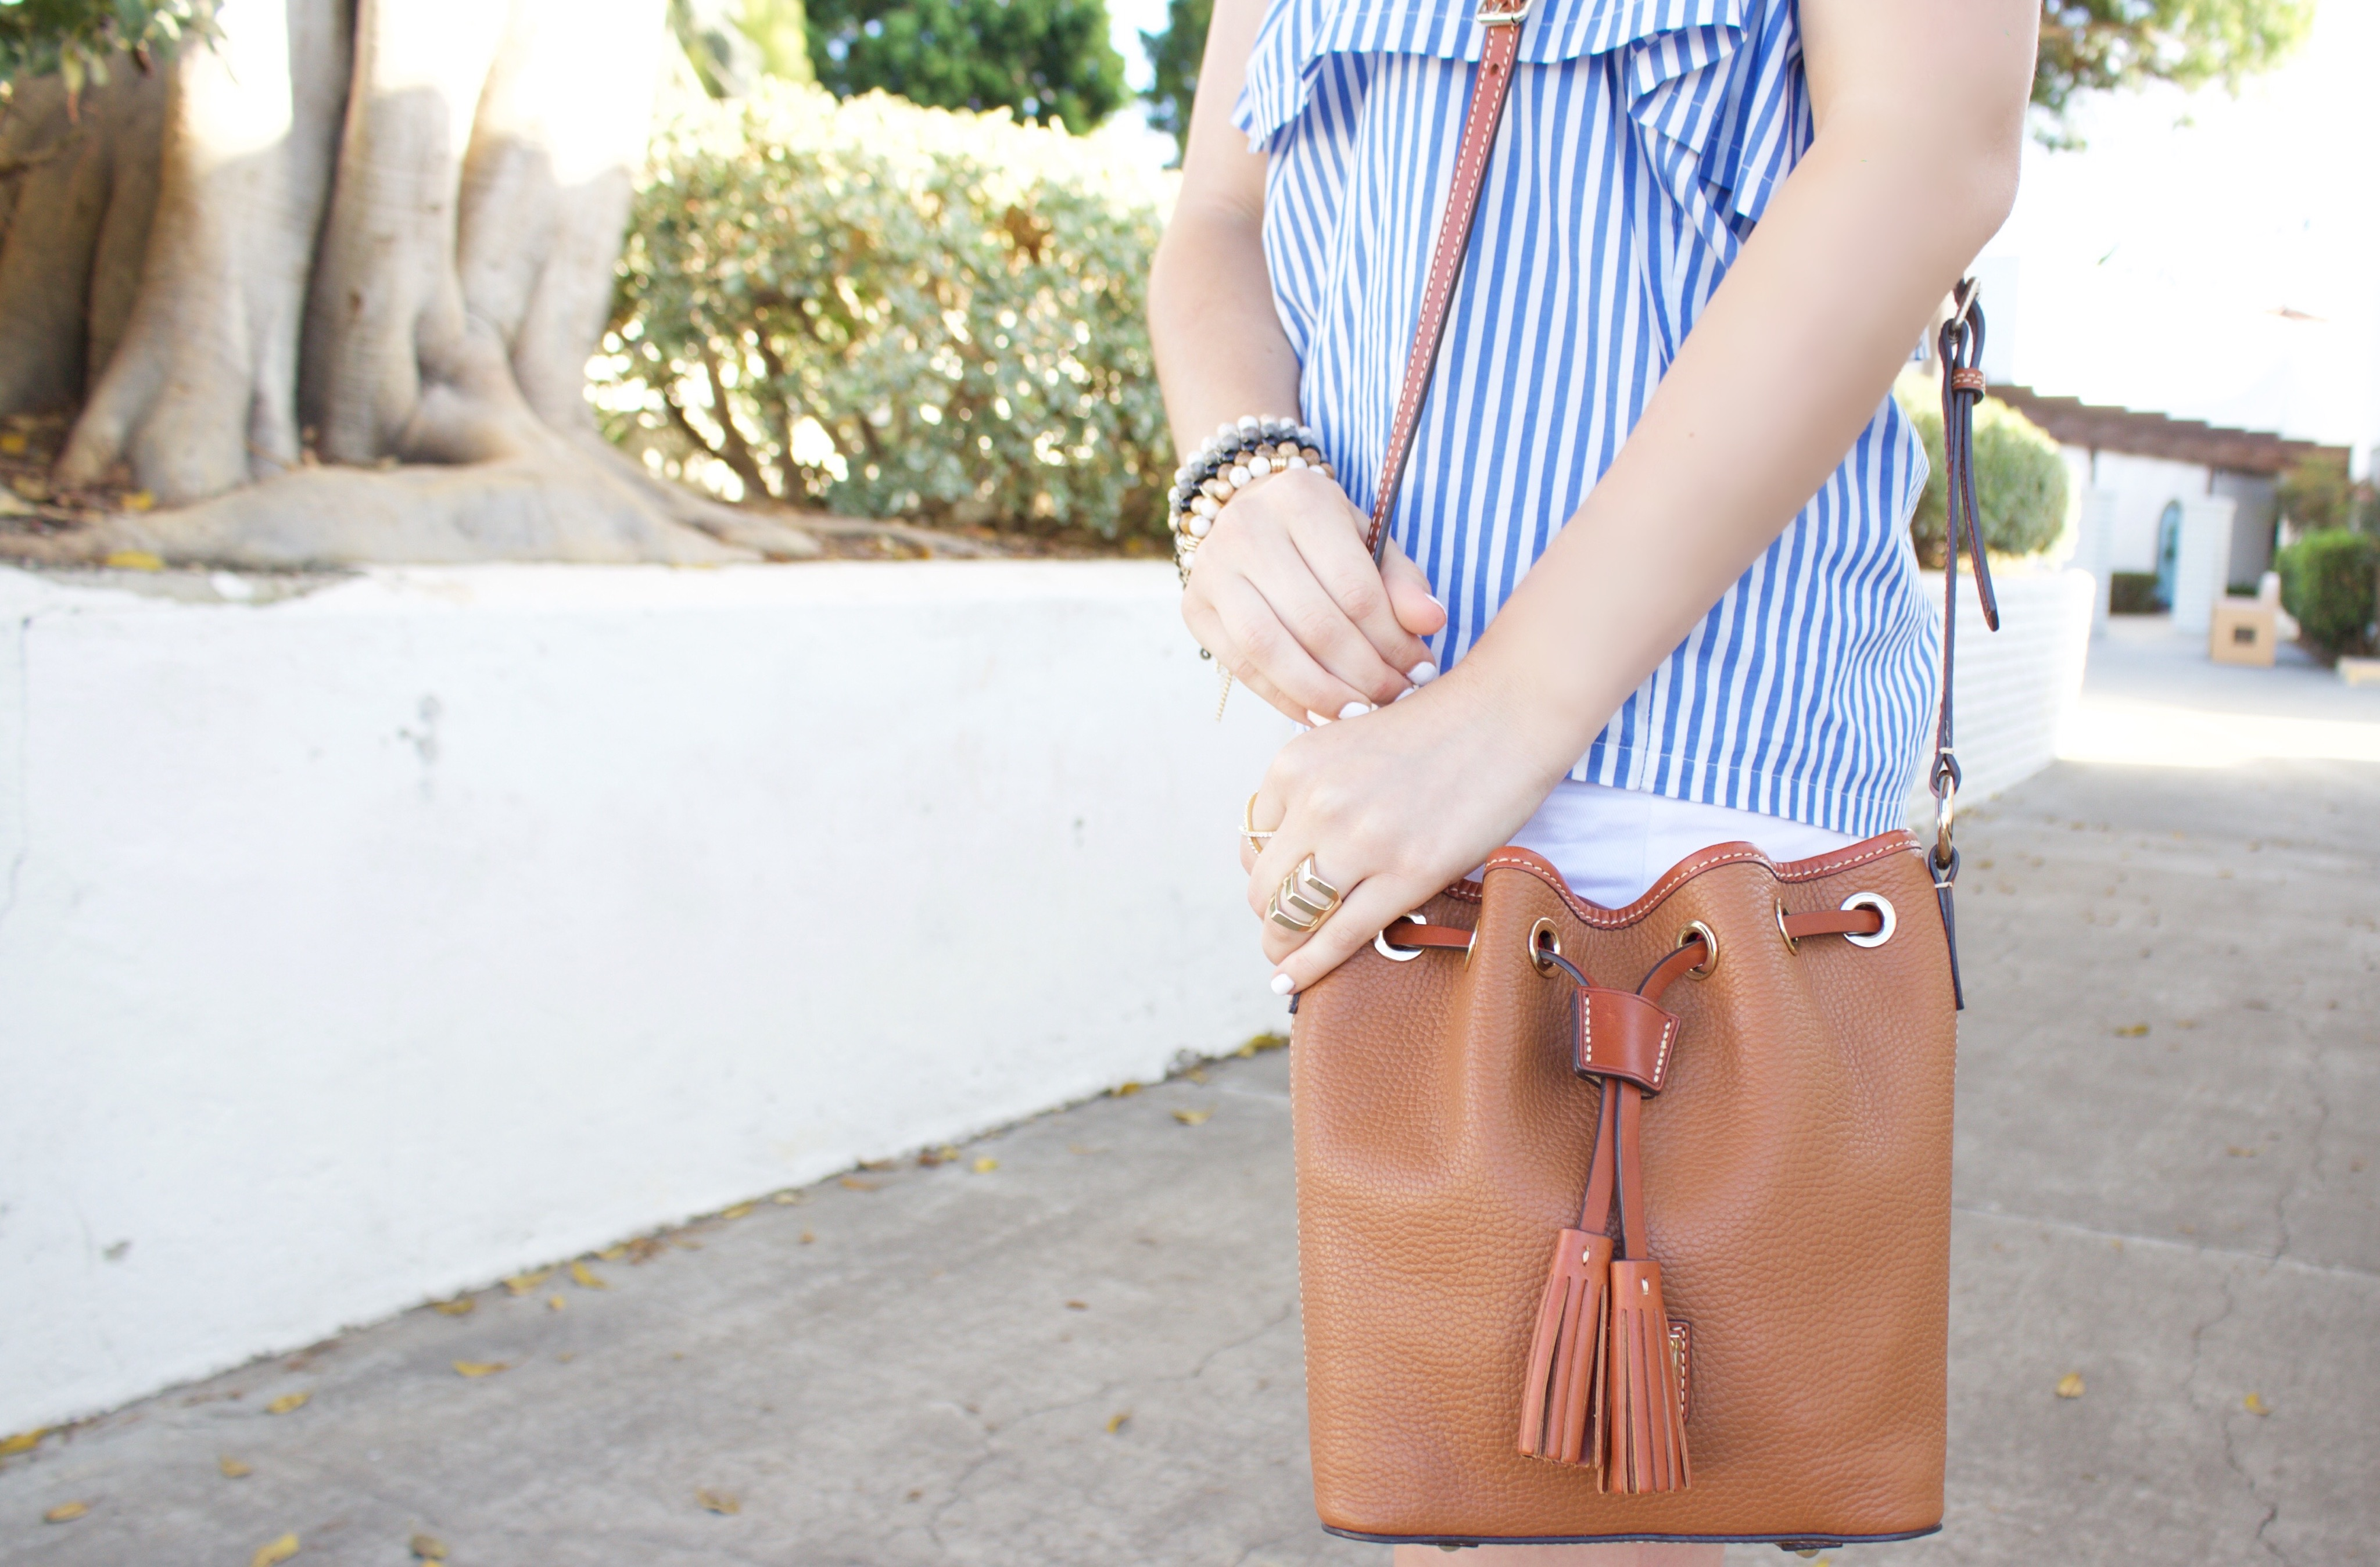 Pebble Kendall Crossbody - Blue and White Striped Strapless Top - My Styled Life